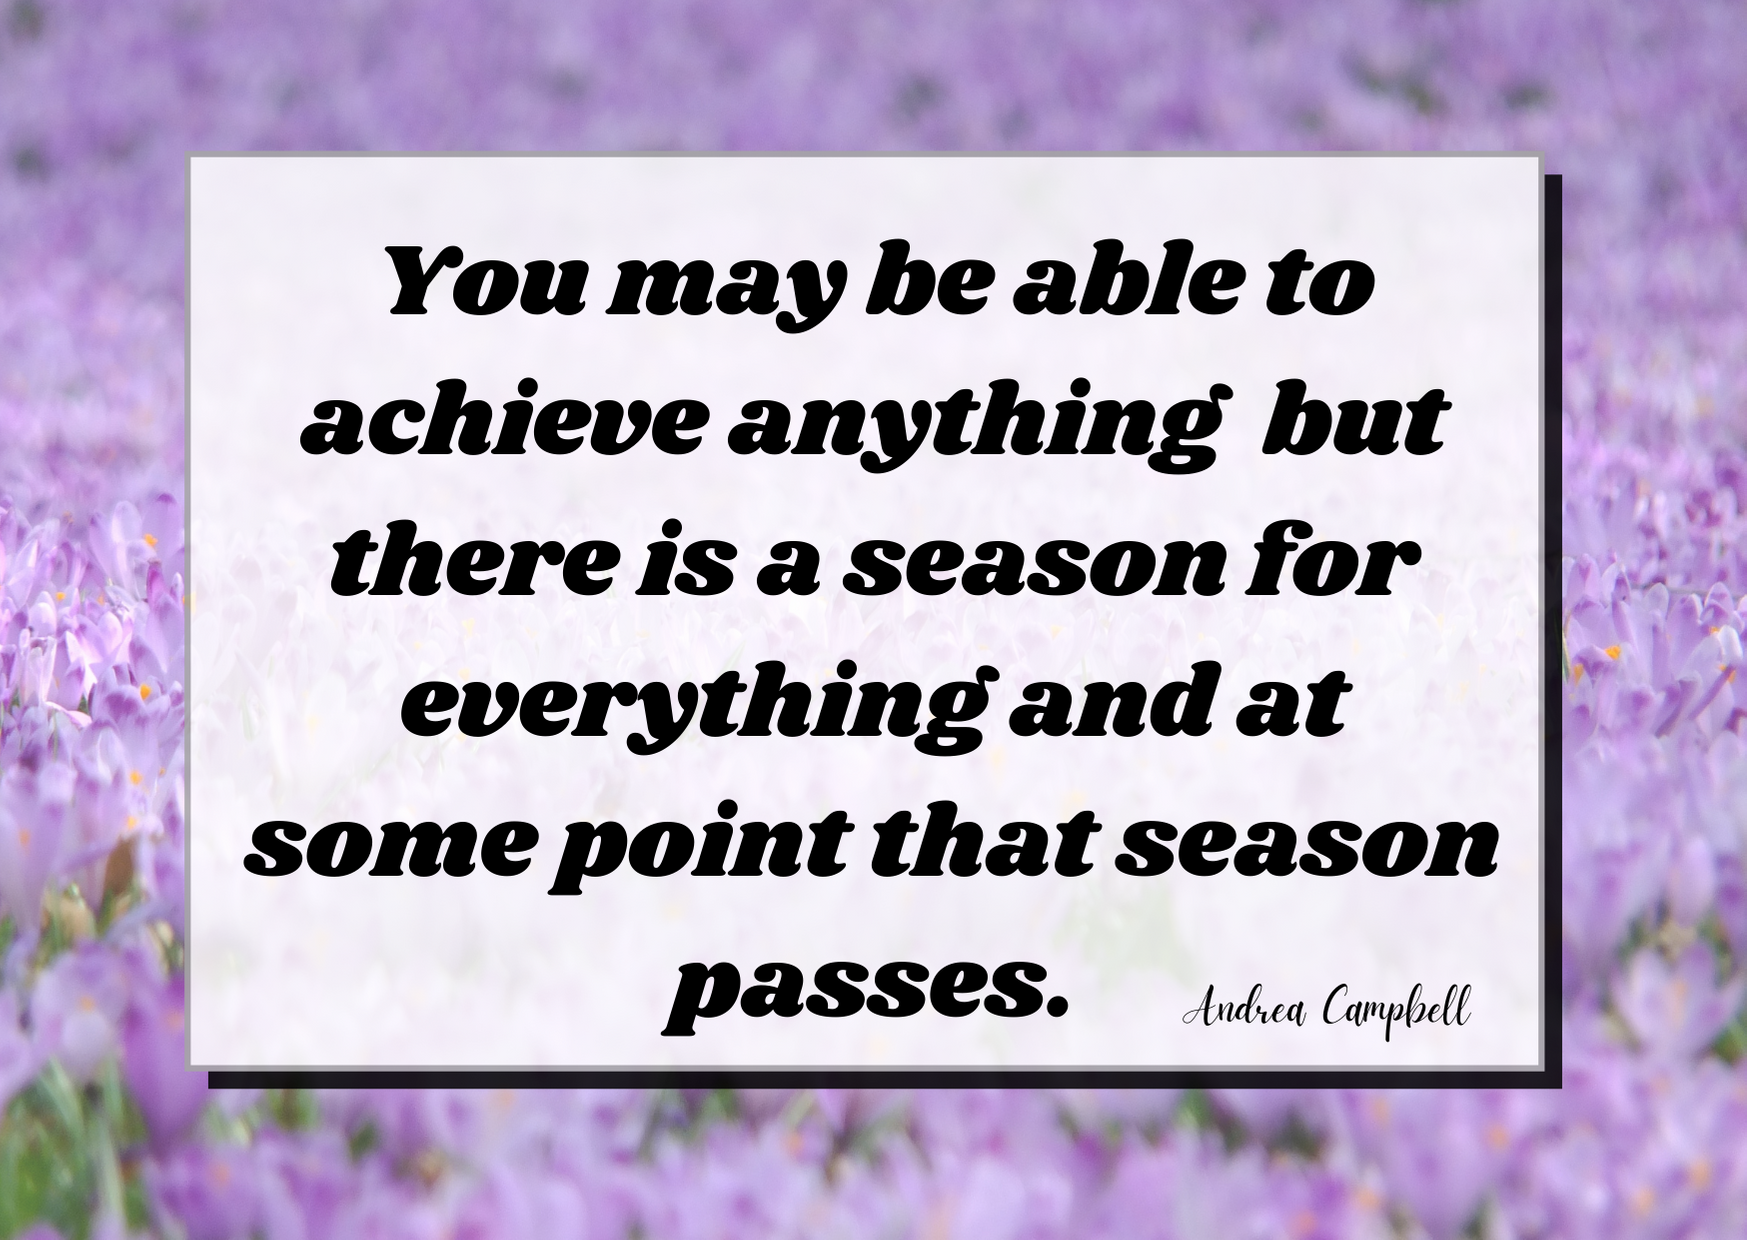 You may be able to achieve